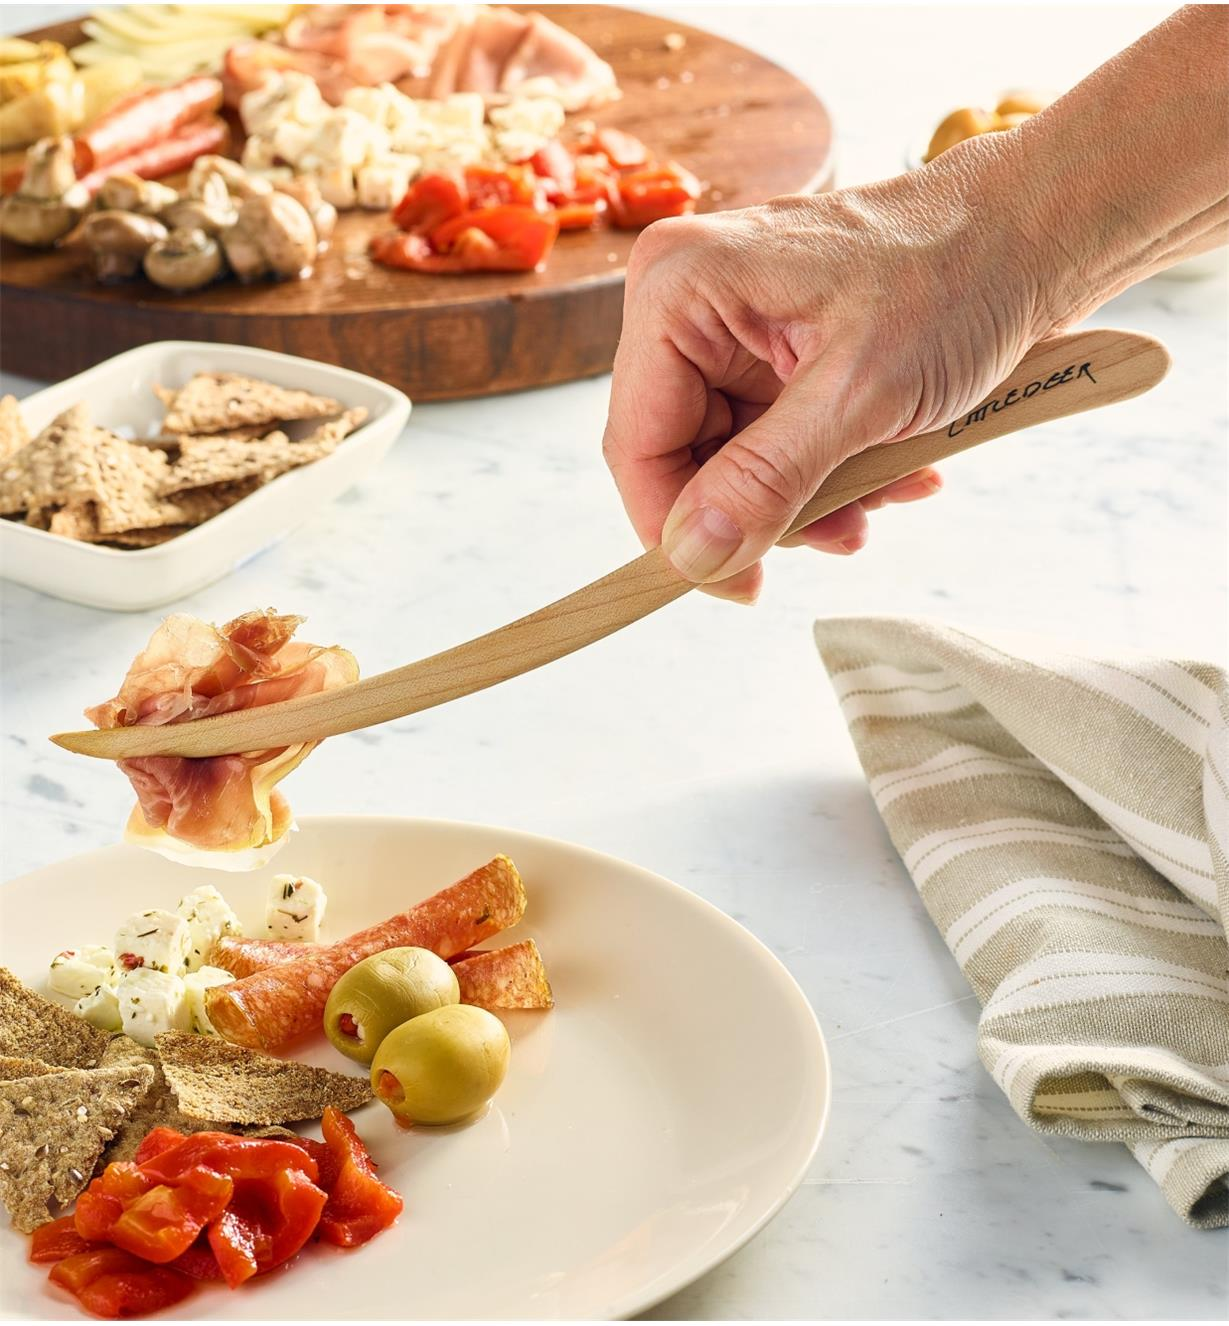 Transferring sliced meat from a charcuterie platter to a plate with the large tongs